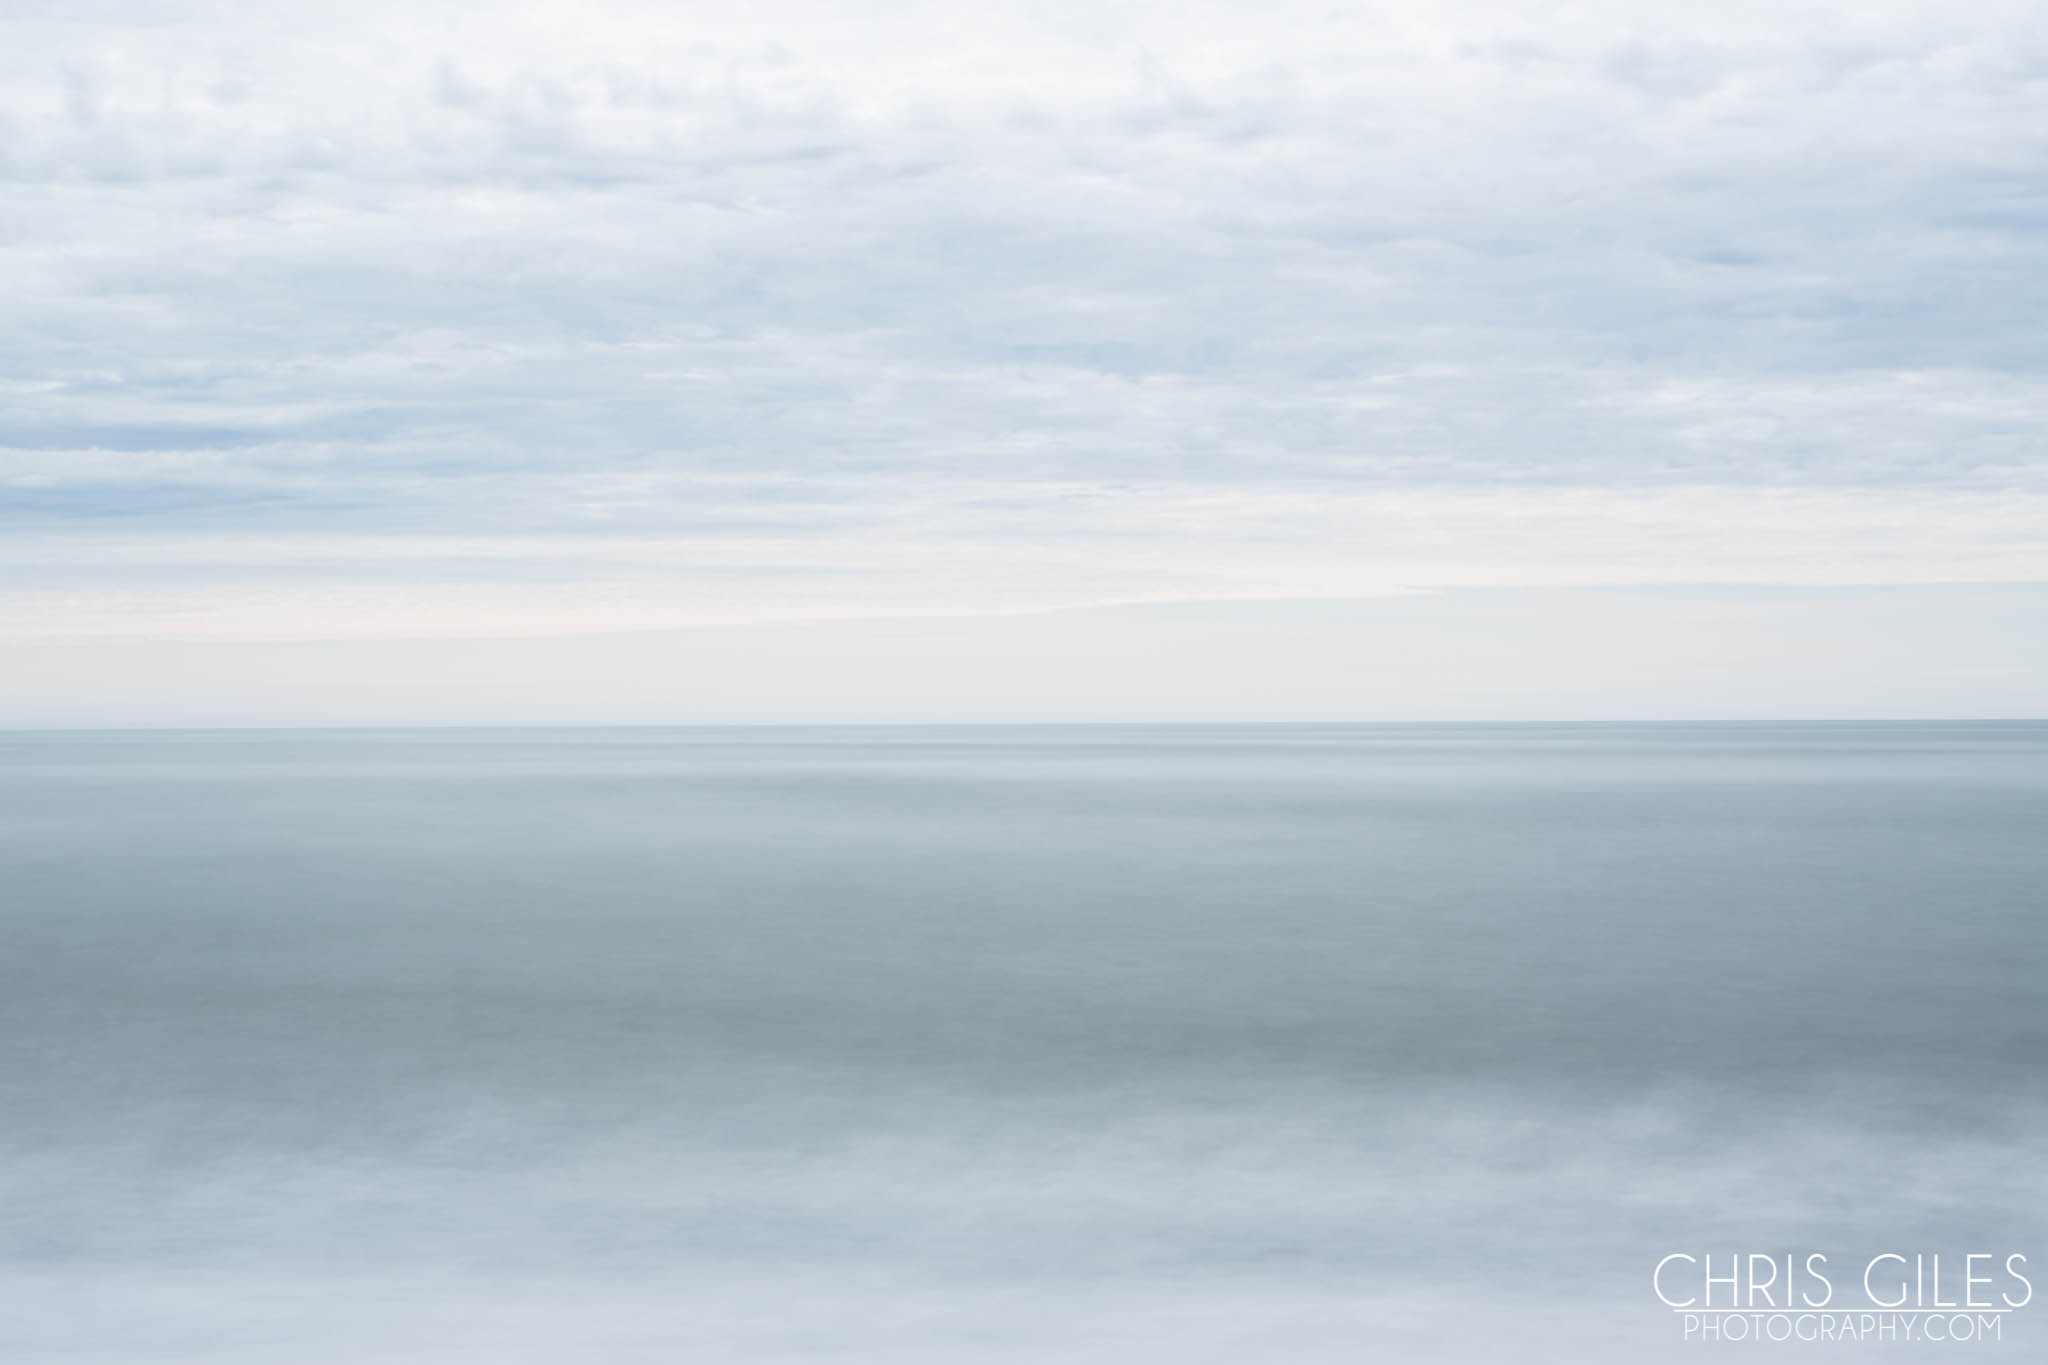 Calm on an otherwise brutal sea